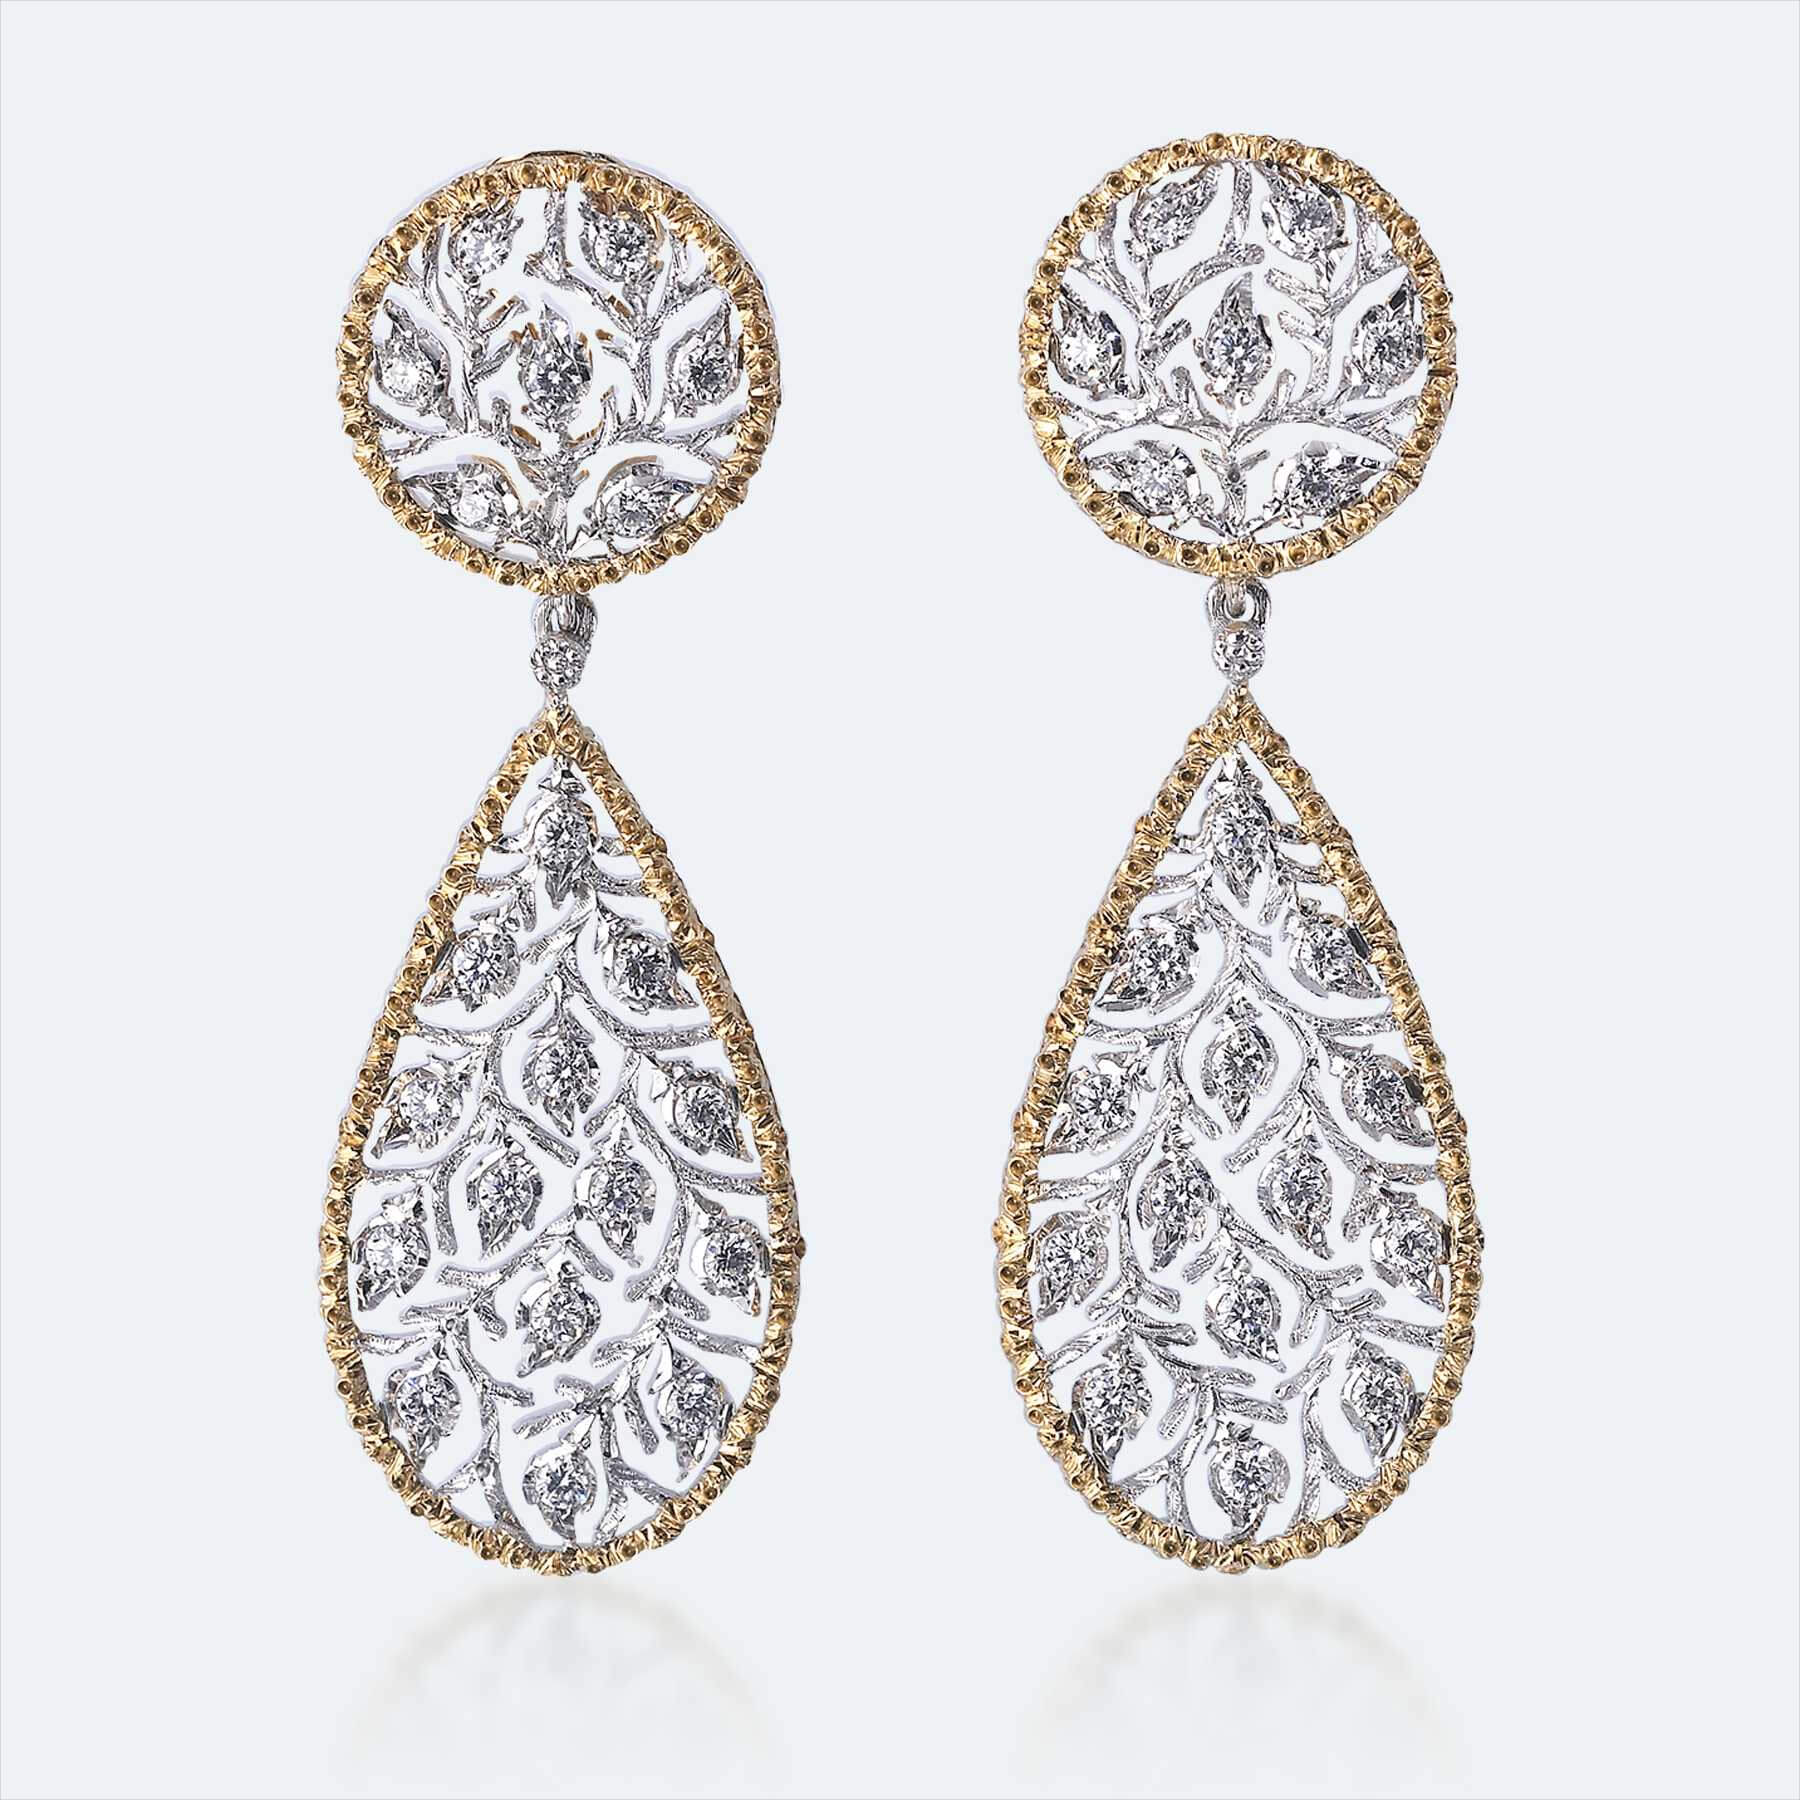 25+ Diamond Earrings Designs, Ideas | Design Trends - Premium PSD ...